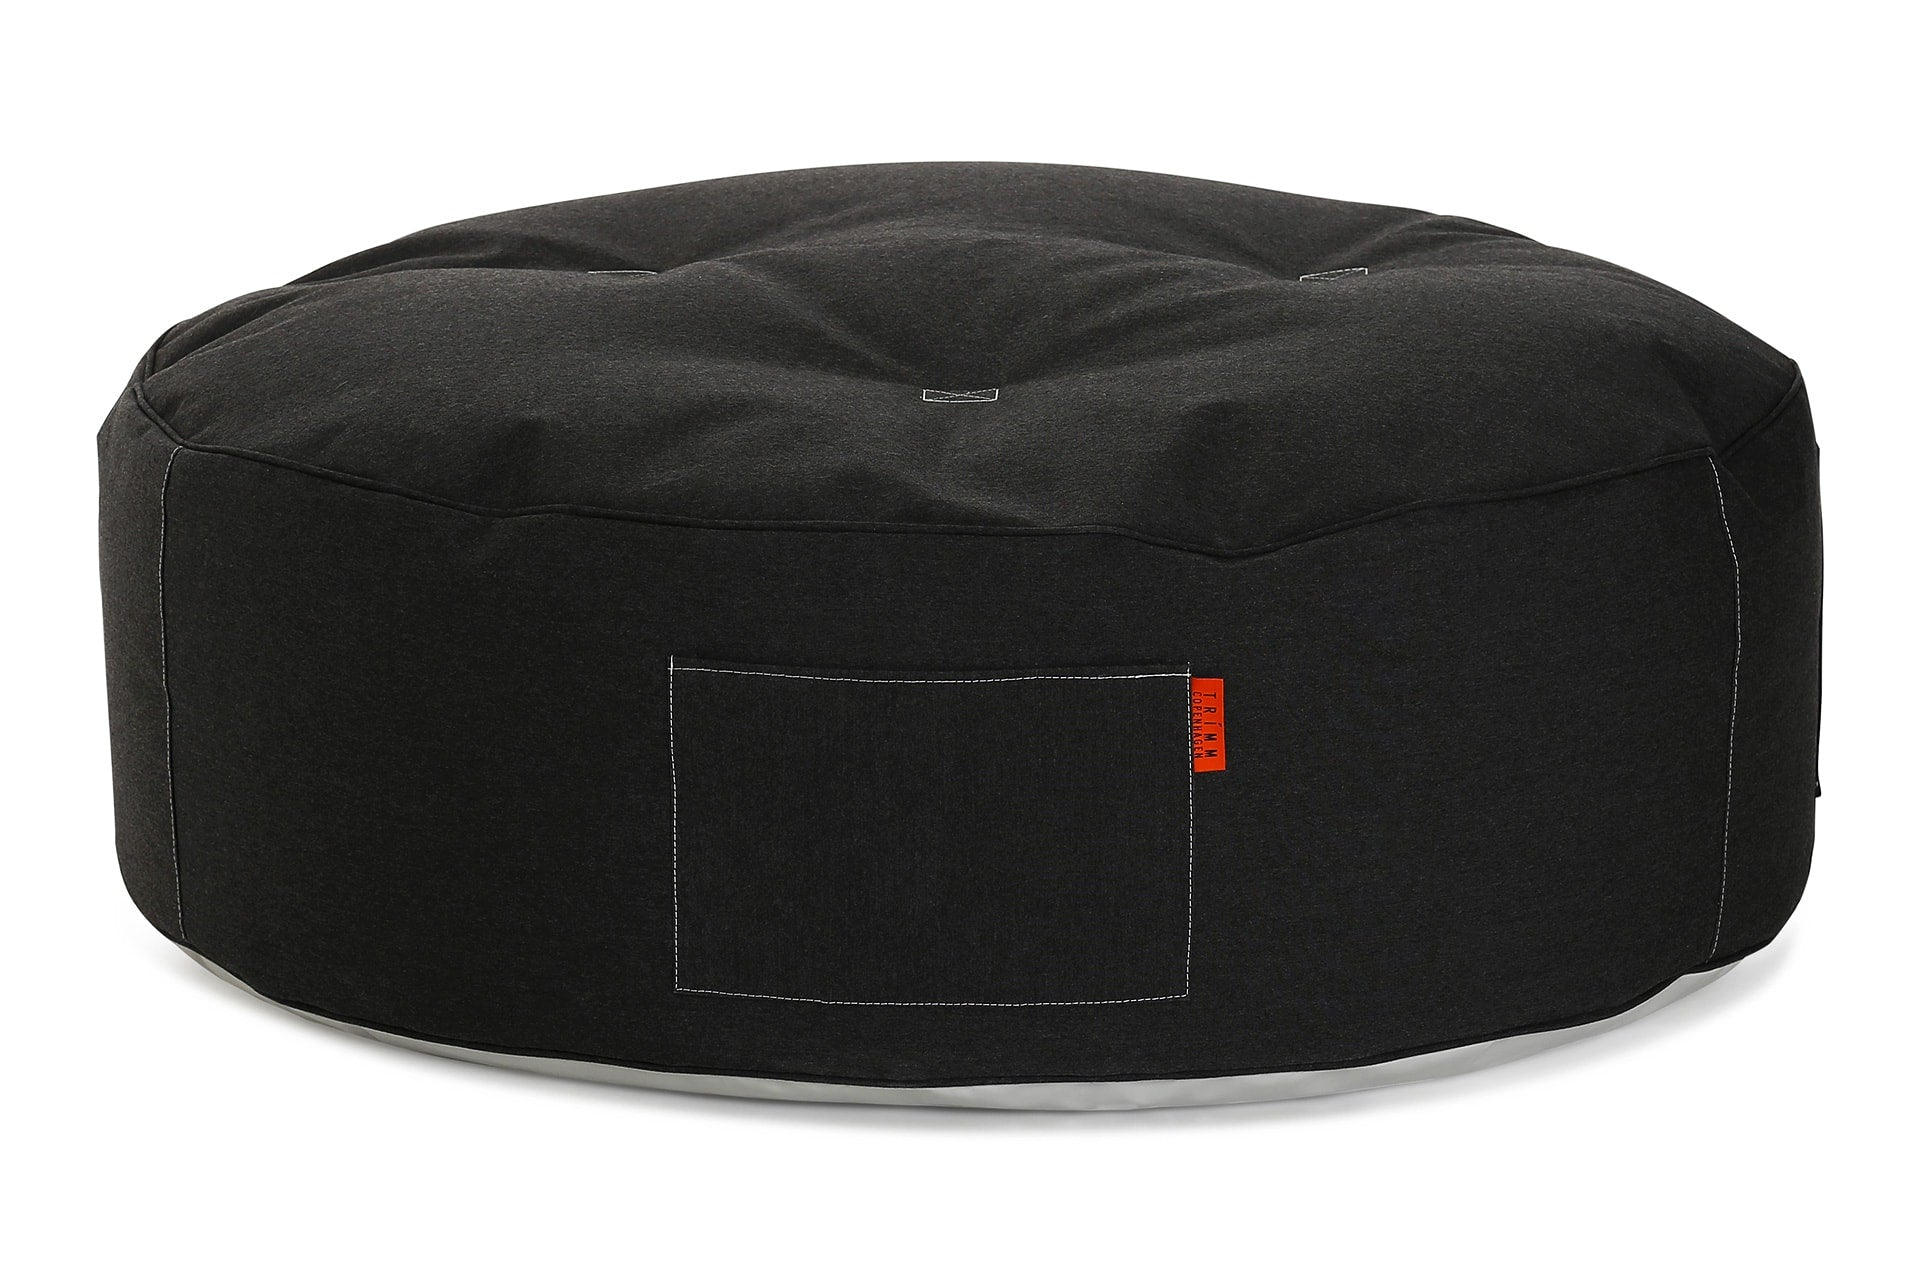 Pouf géant Full Moon by Trimm-coul noir-PARIDEO design contemporain durable